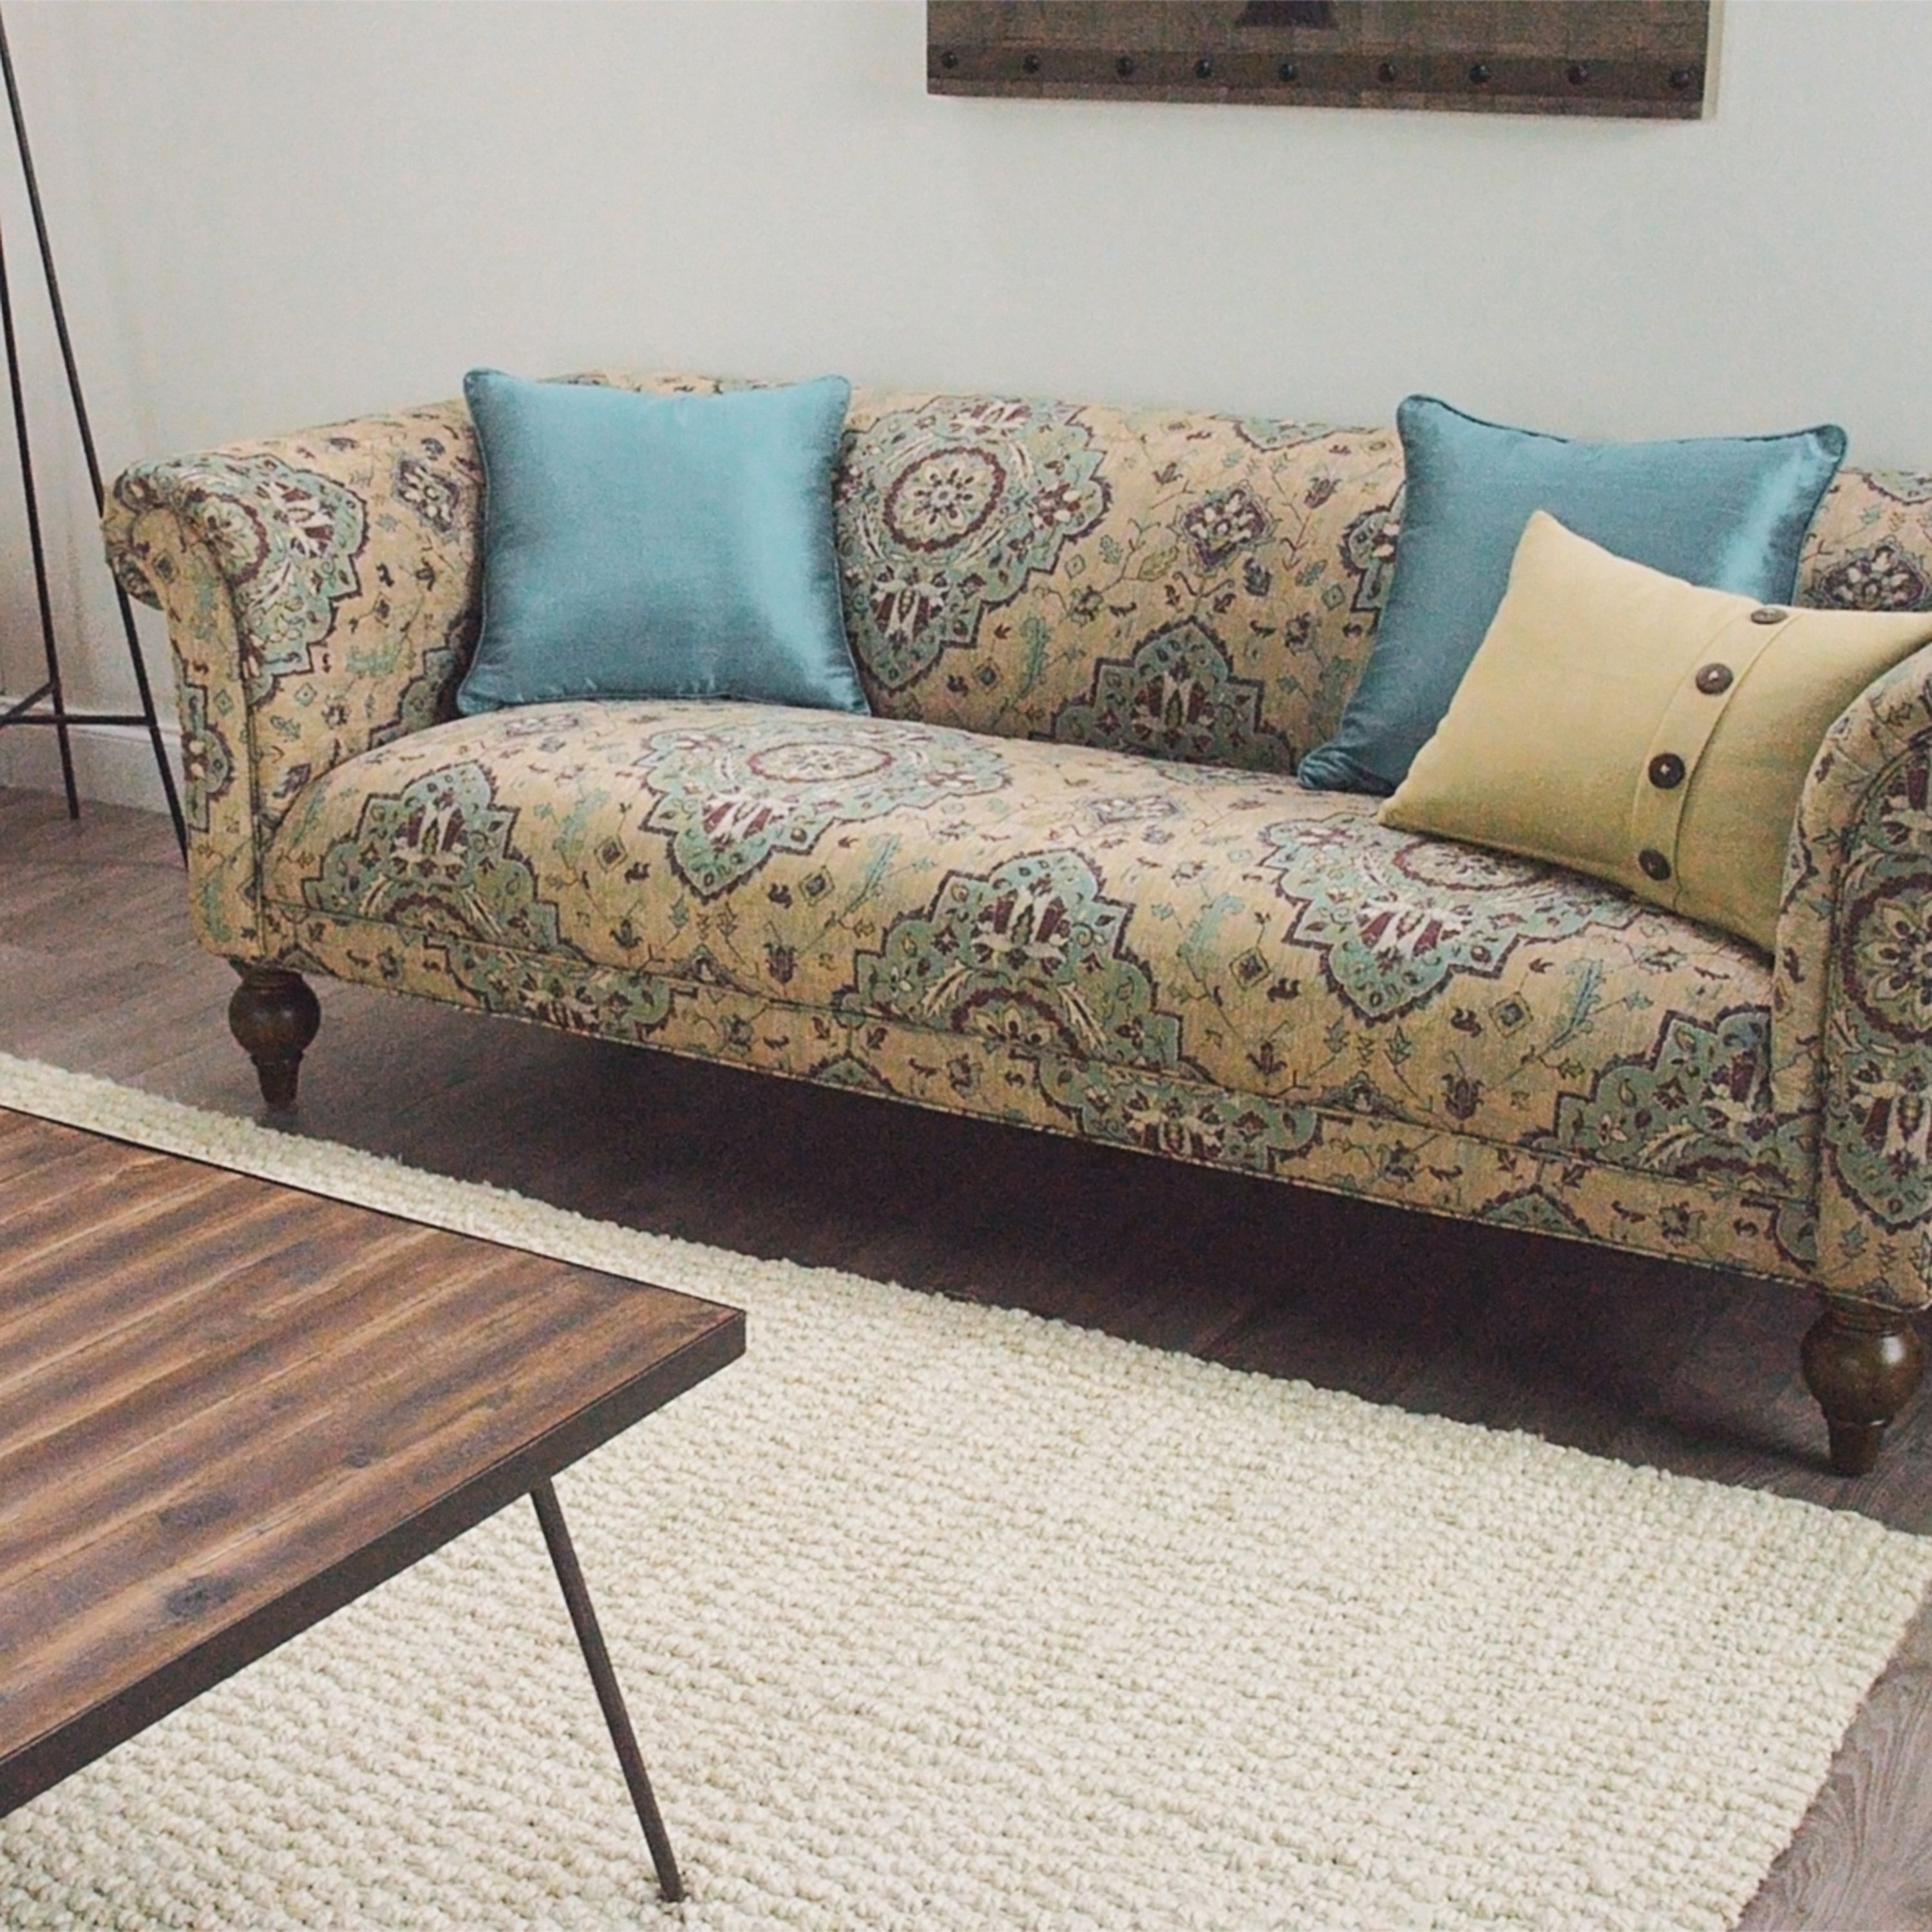 Our Vintage Inspired Sofa Is Upholstered In 100% Polyester Fabric Featuring  A Pattern Inspired